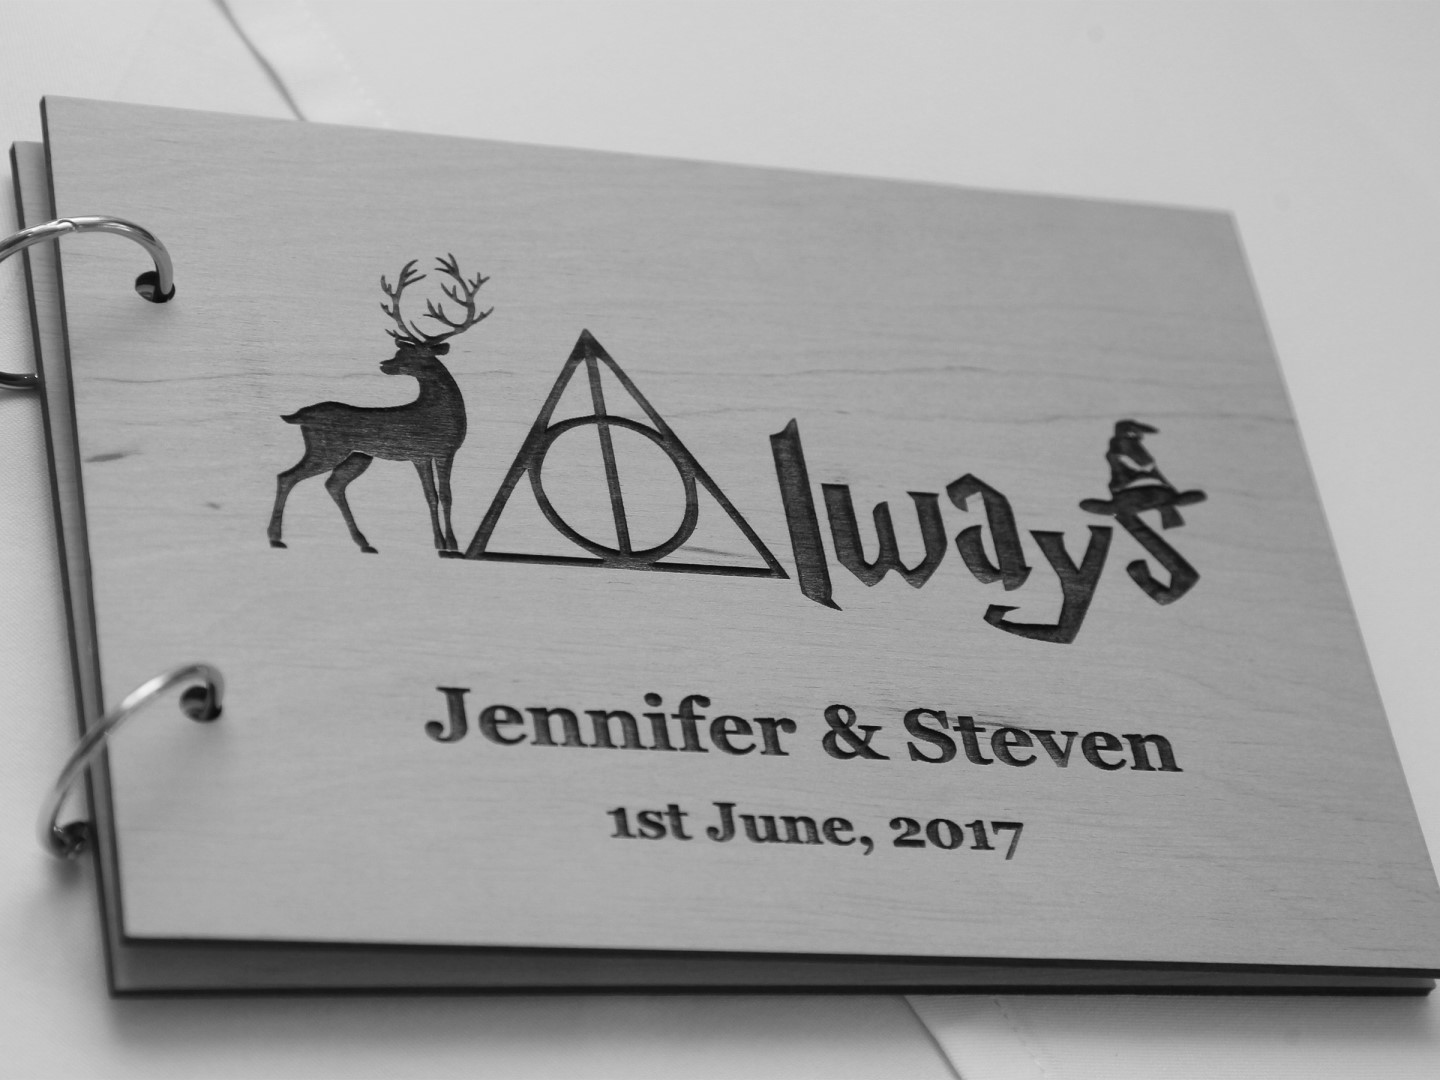 Harry Potter Wedding- Pink Photographics- Unconventional Wedding- Themed Wedding- Harry Potter Wedding Guestbook